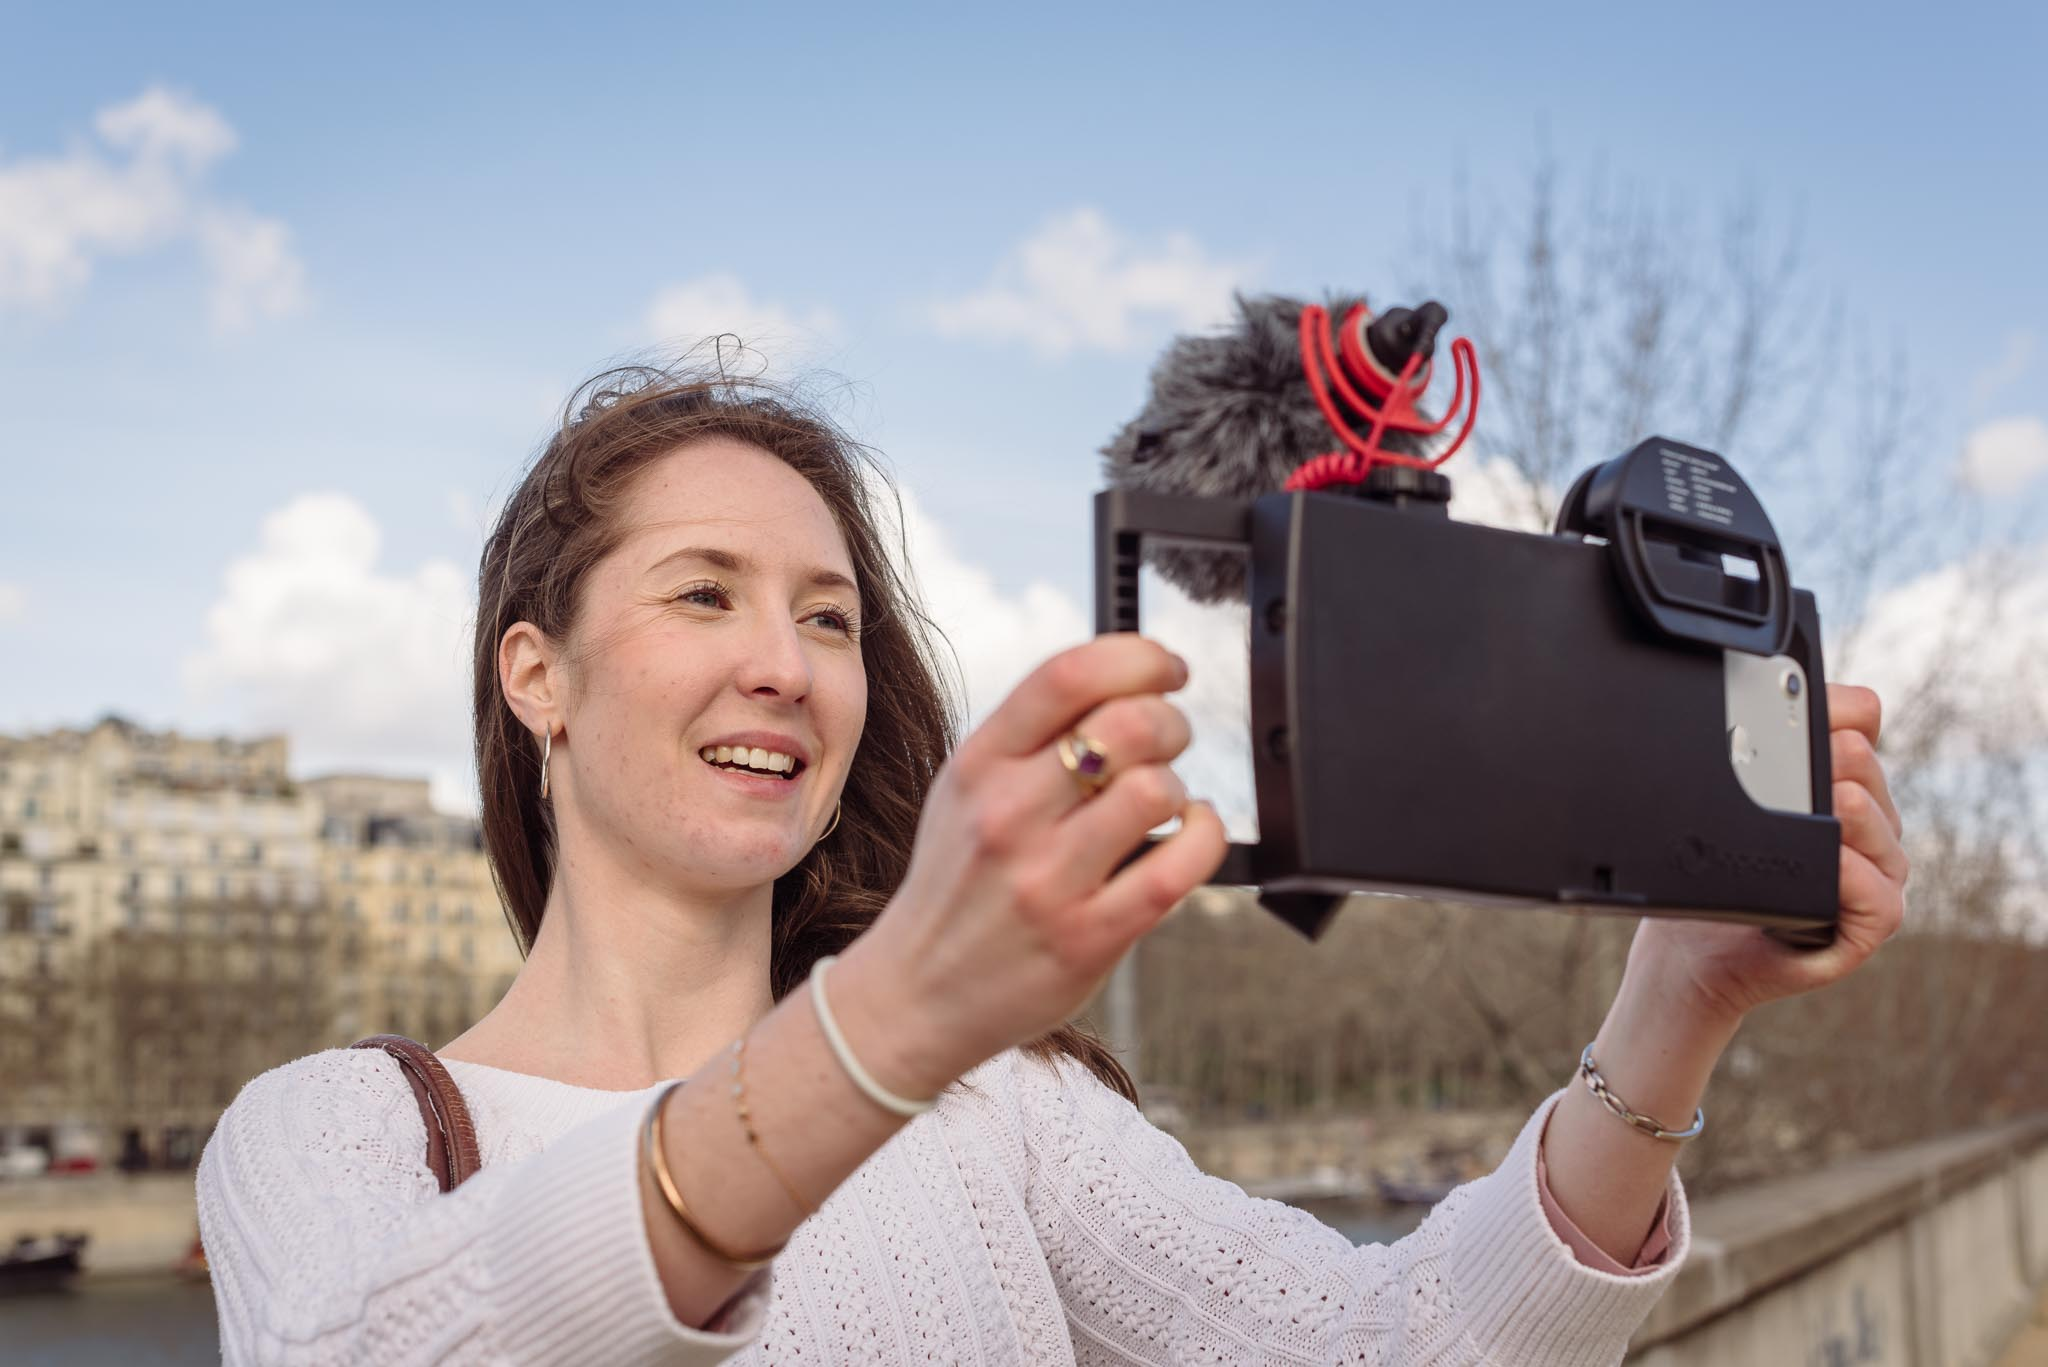 lifestyle photography in Paris of woman vlogging with iPhoneography equipment